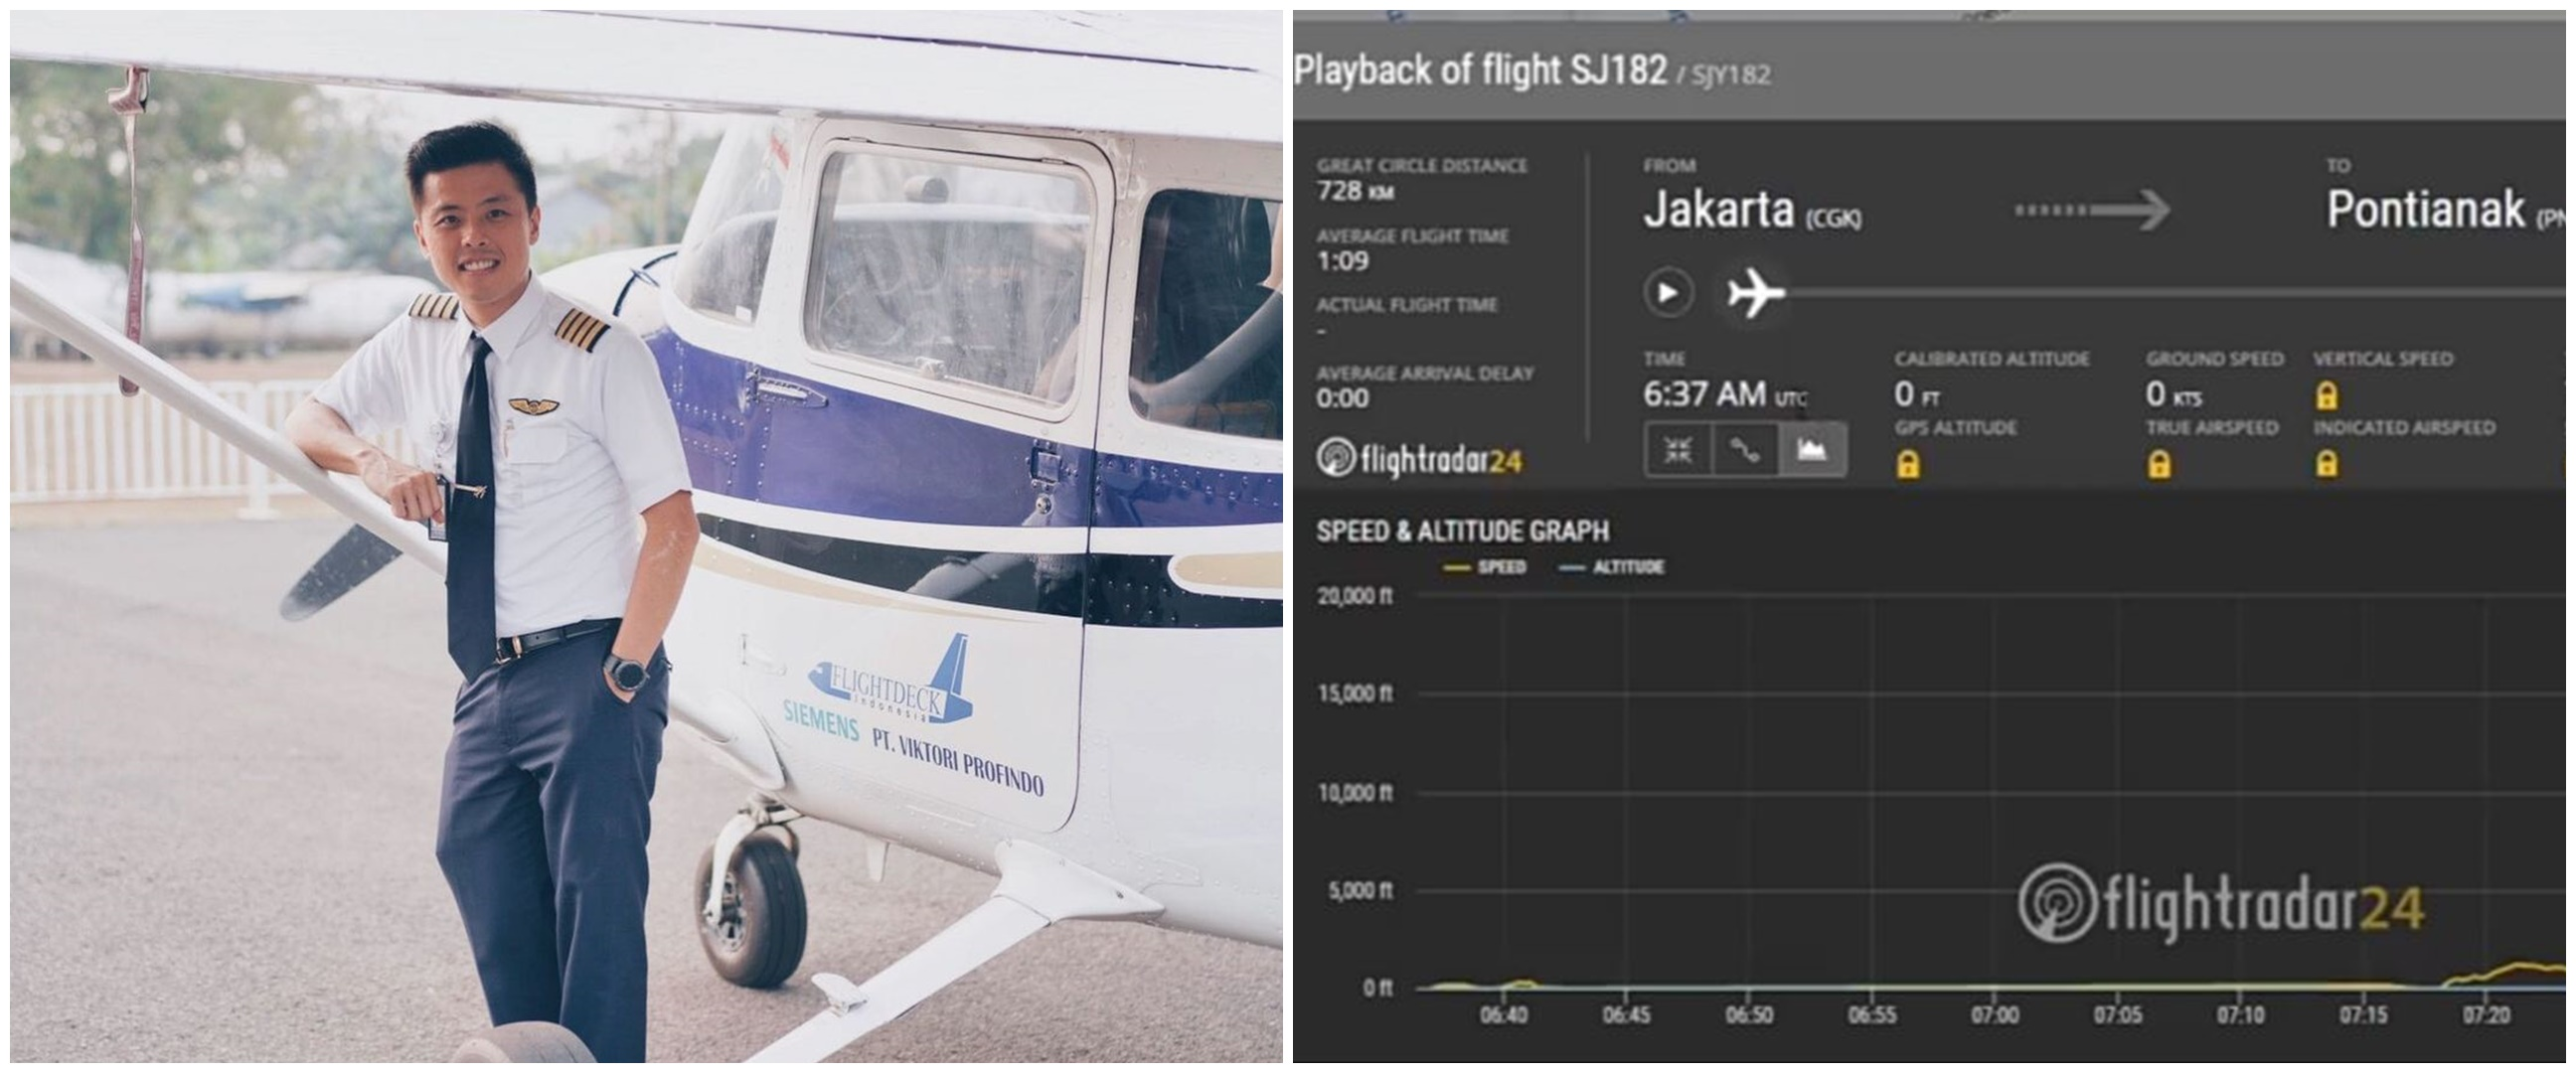 Analisa data flightradar24 Sriwijaya Air SJ182 oleh Captain Vincent